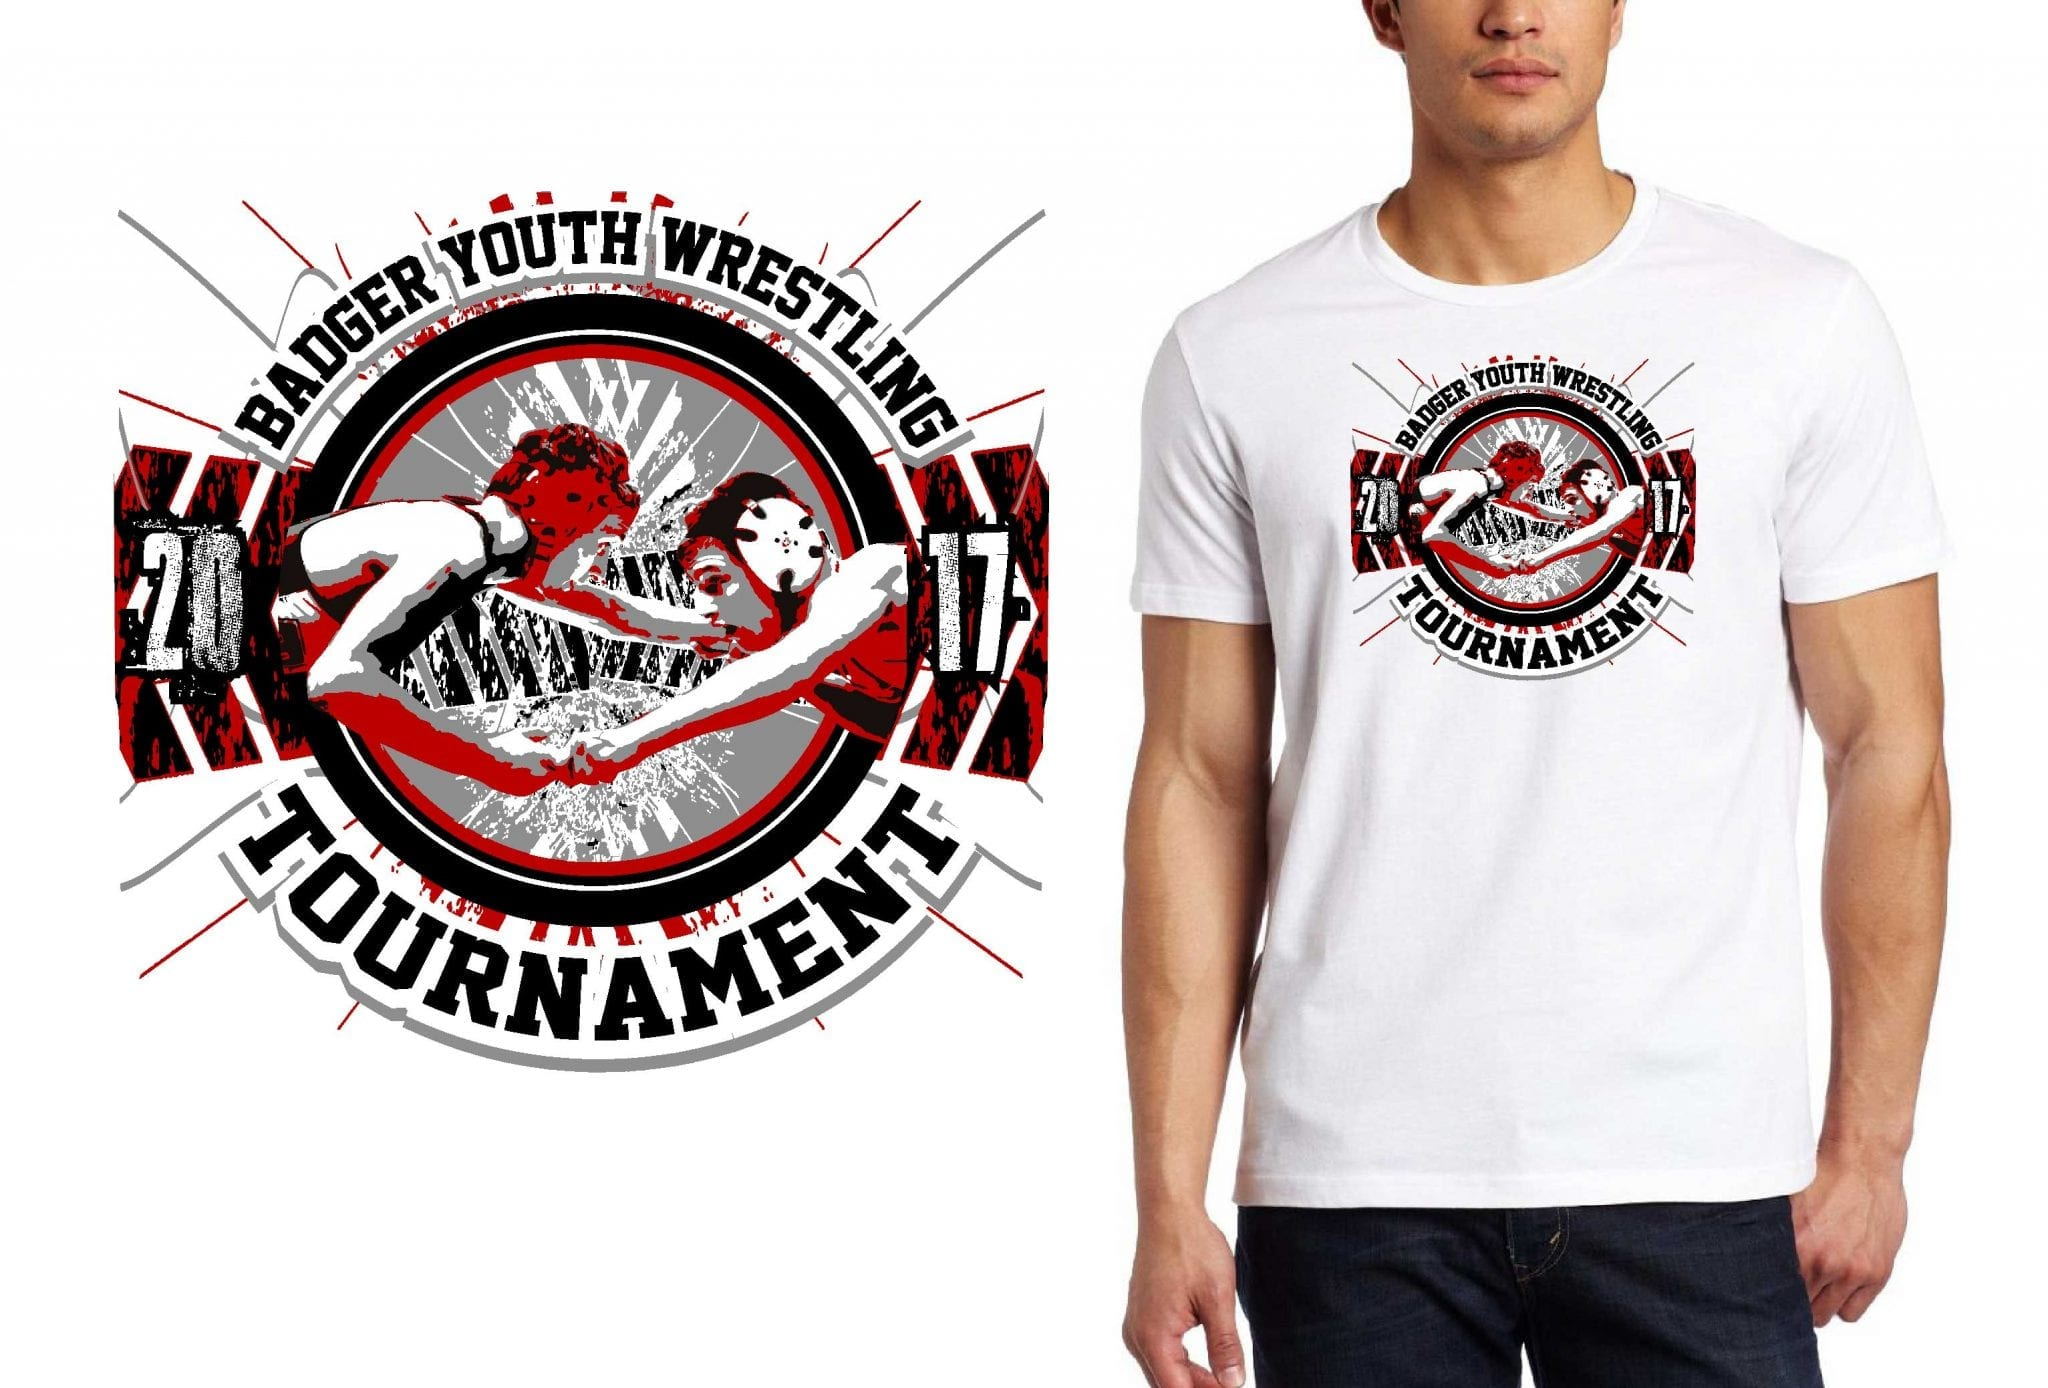 WRESTLING T SHIRT LOGO DESIGN Badger-Youth-Wrestling-Tournament BY UrArtStudio